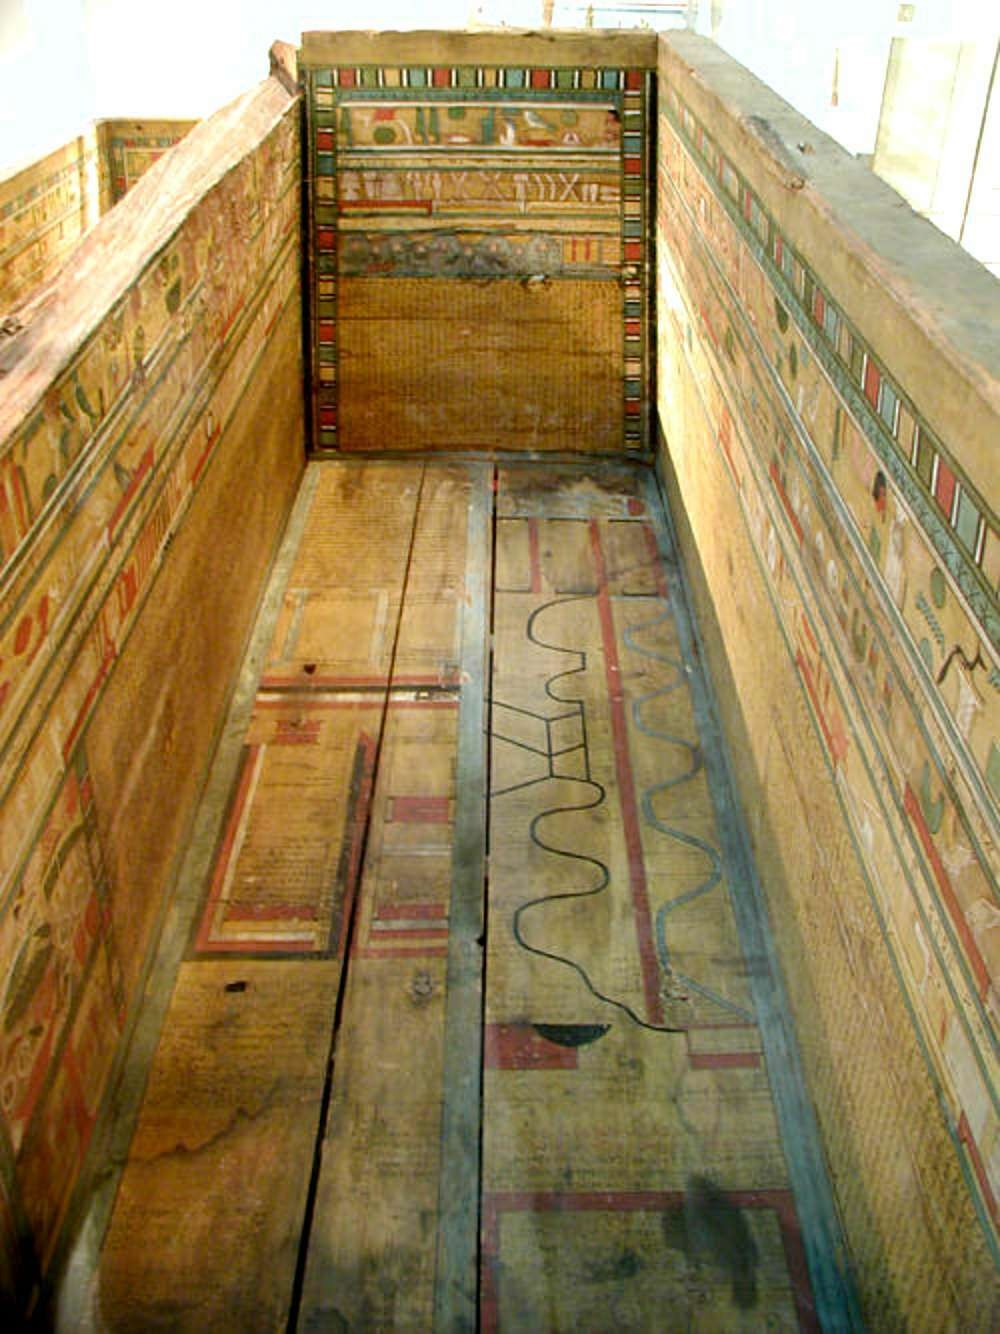 Map of the netherworld from the coffin of Gua, from Deir el-Bersha, Egypt. 12th Dynasty, 1985-1795 BC.